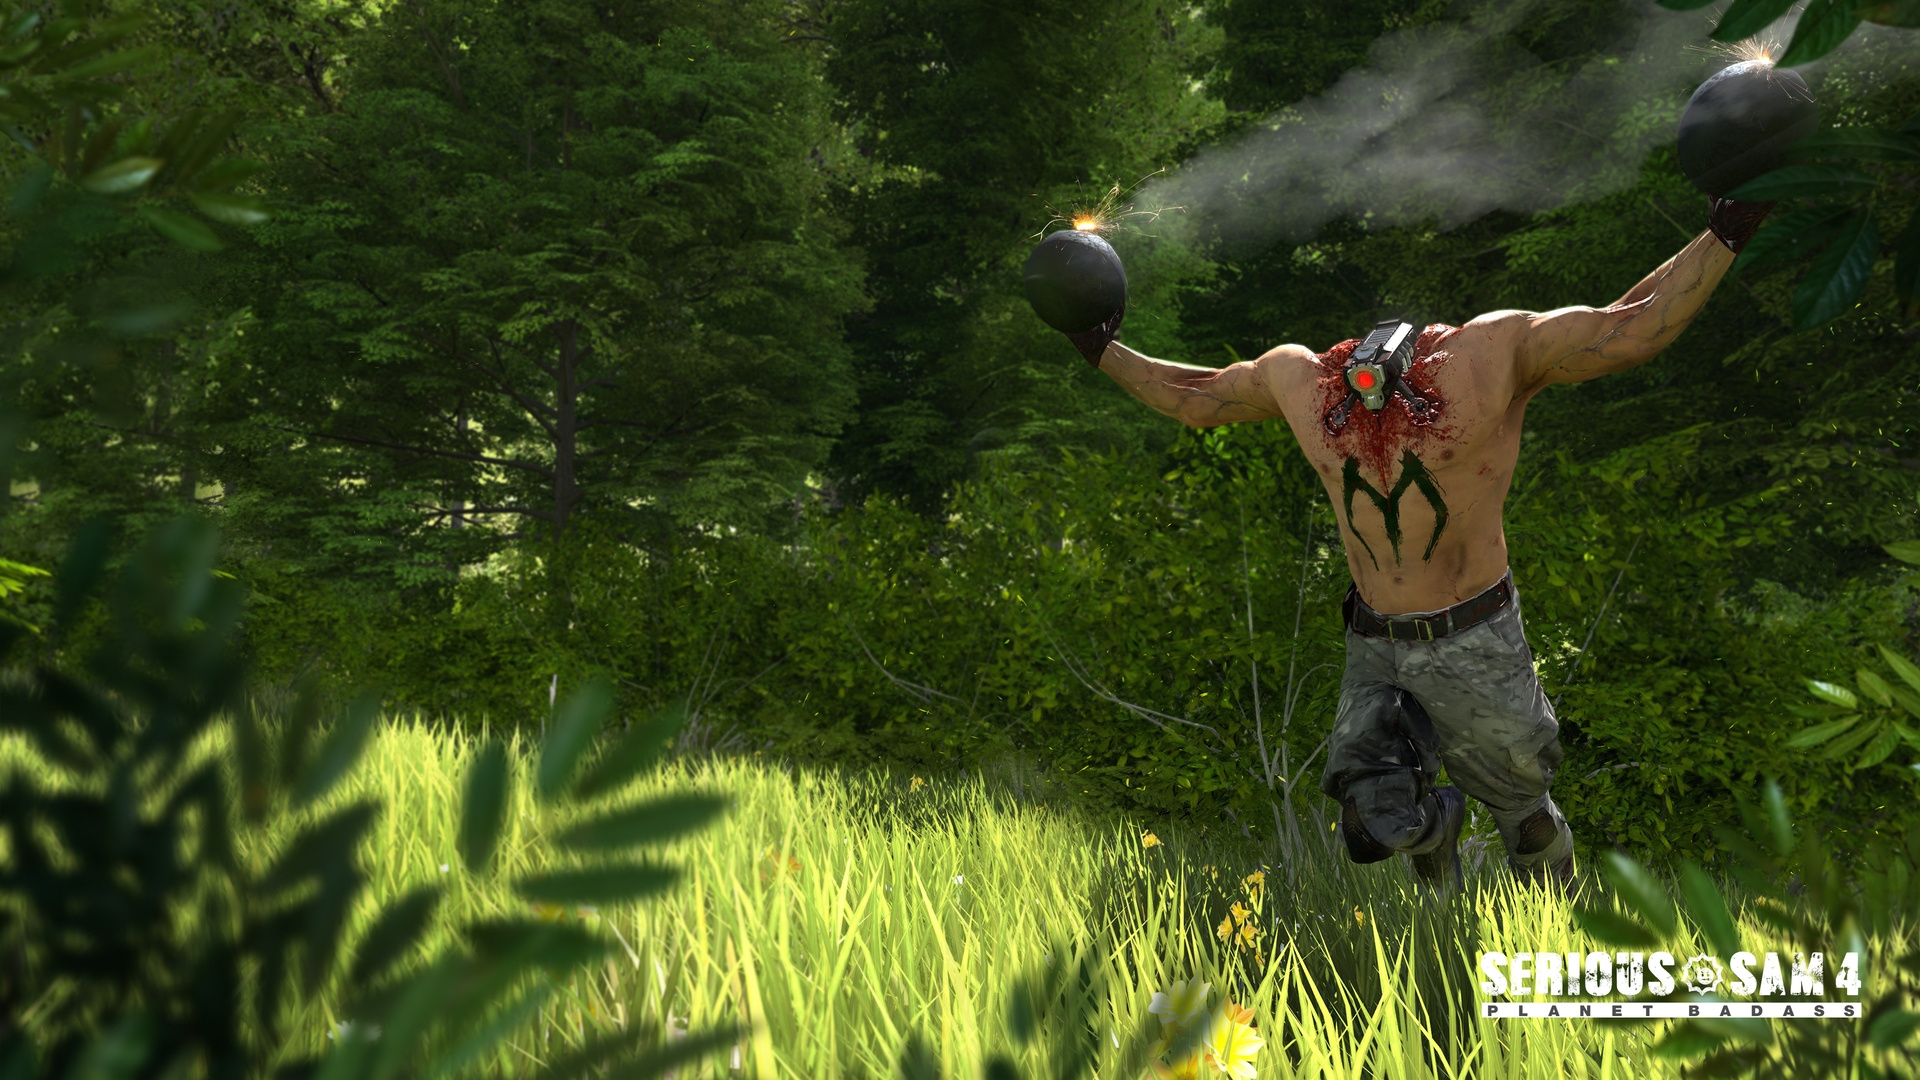 New trailer released for Serious Sam 4